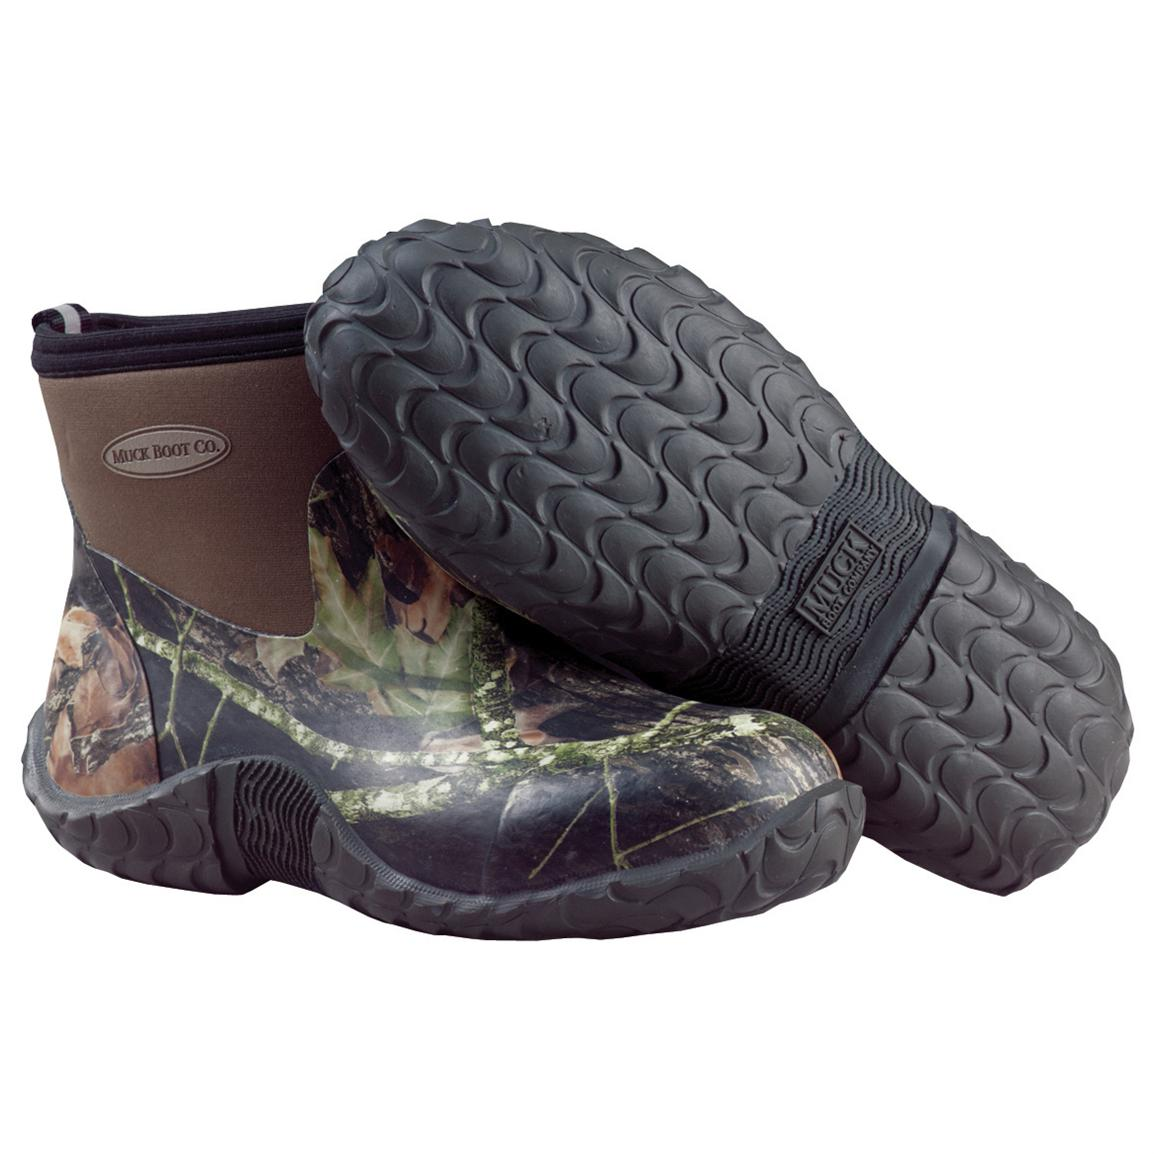 Weather Protection & Style: Women's Muck Co. Boots. The perfect companion for a rainy day adventure, bonfire, or outdoor function, women's Muck® boots blend weatherized protection and oh .